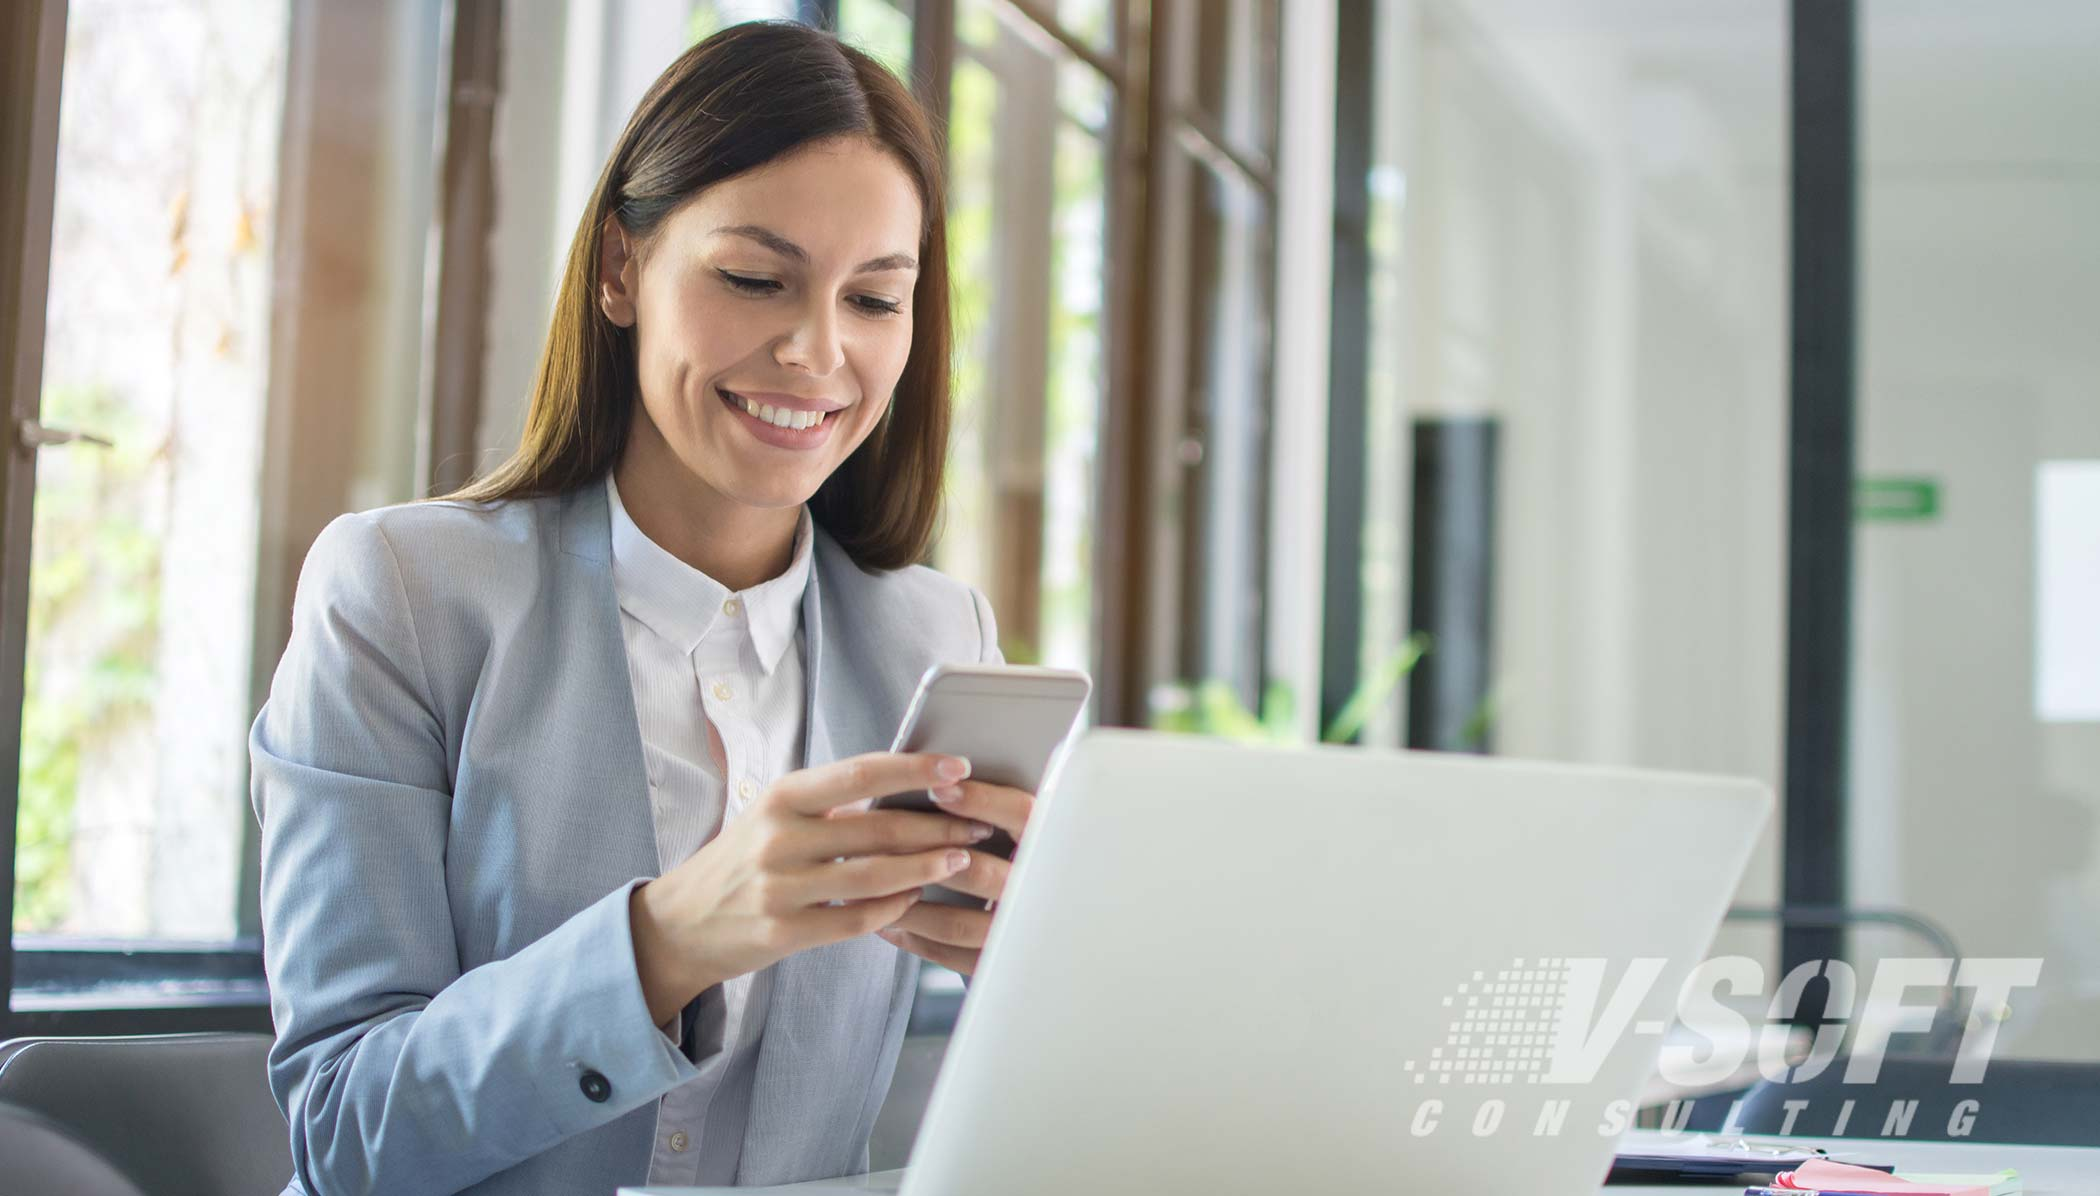 How Onboarding Mobile App In ServiceNow New York Streamlines Onboarding Process